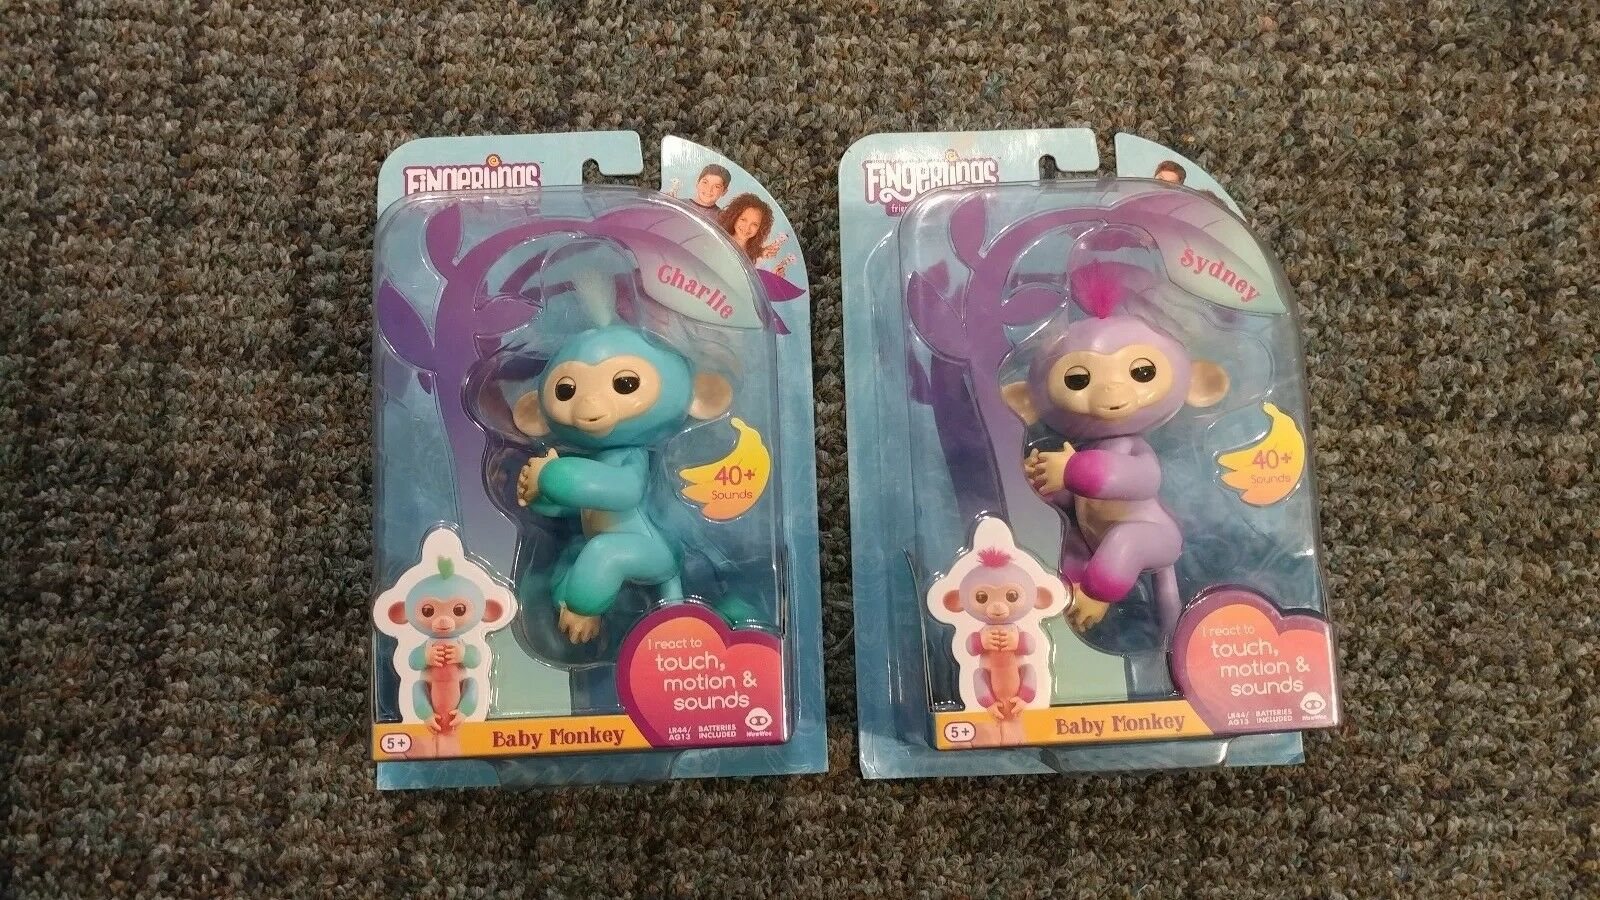 Fingerlings Sydney Charlie pink bluee purple two-tone